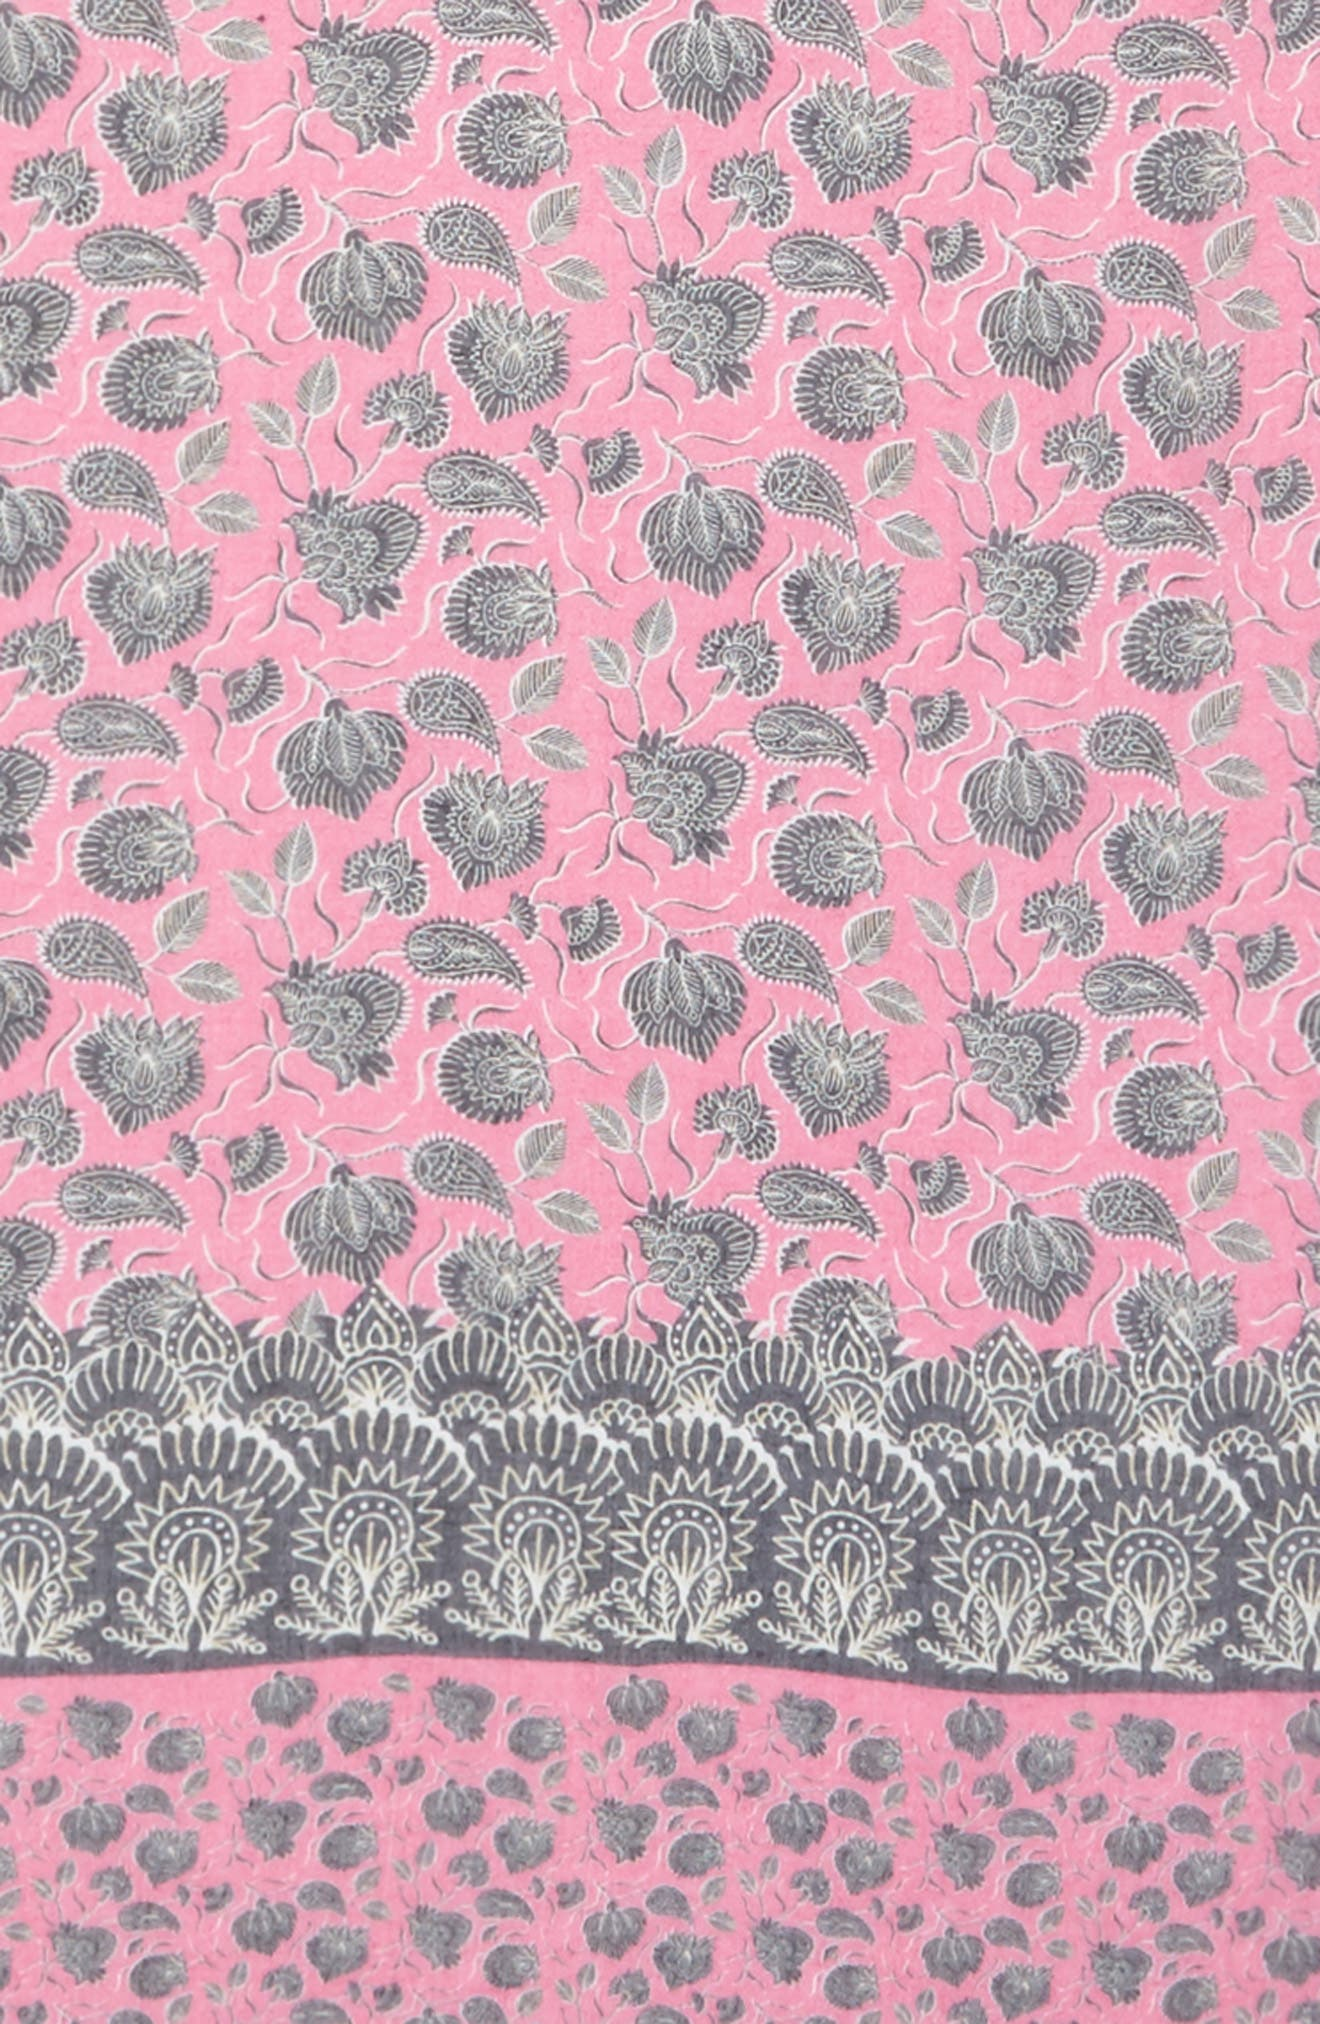 Lotus Paisley Oblong Scarf,                             Alternate thumbnail 4, color,                             Fuchsia Pink